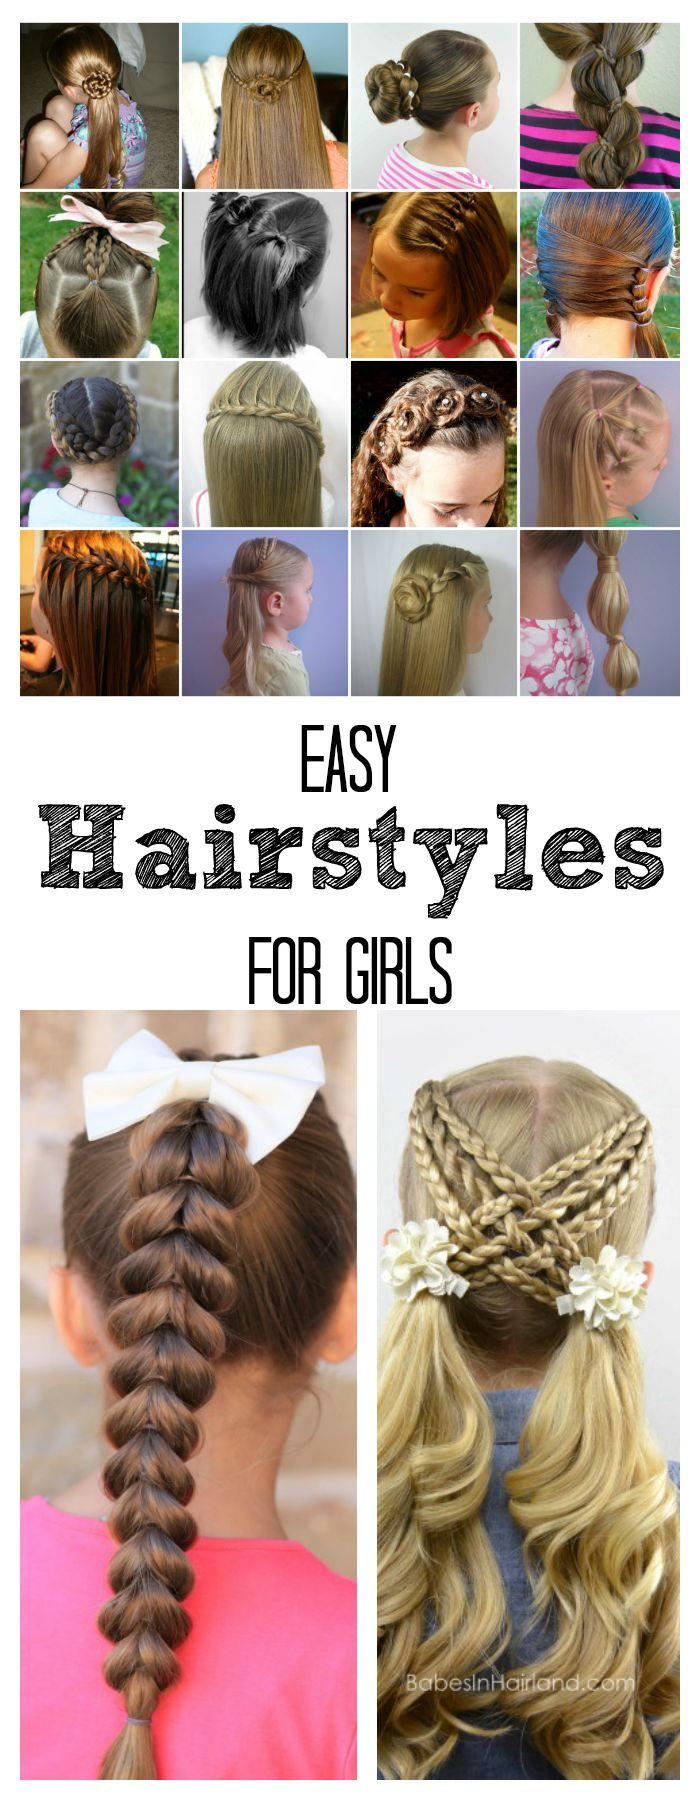 Easy Hairstyles For Girls - The Idea Room - Hairstyles For Girls